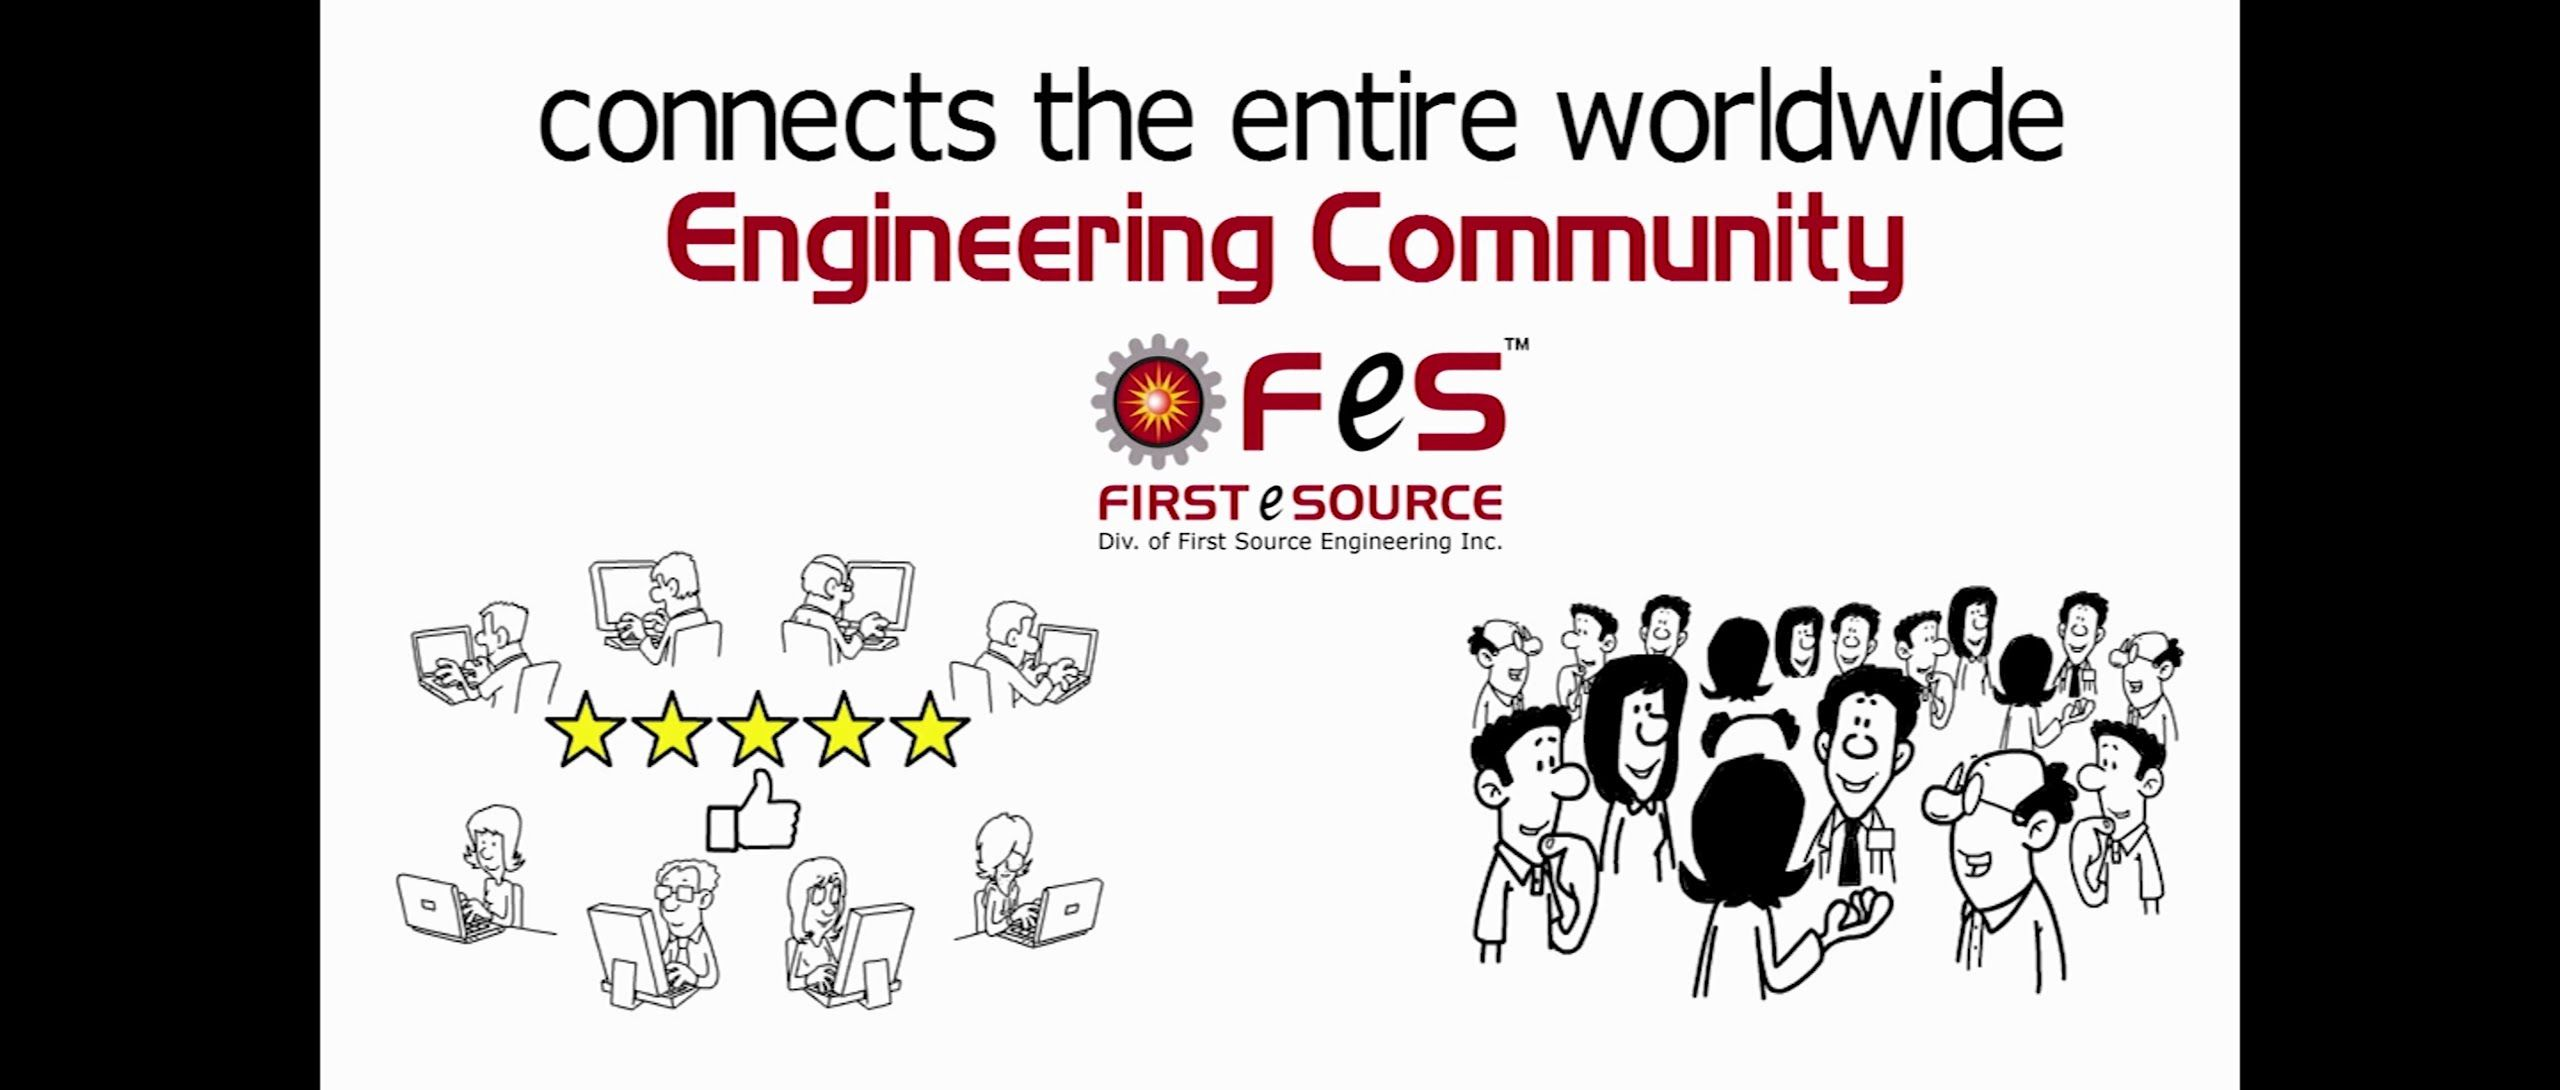 "First Source Engineering Inc is an Engineering Community and a Marketplace for all things related to Engineering Sector. Get-together and expand your Engineering Business and Network. Firstesource.com is a platform for Engineers and Engineering Buyers. Market your Industrial Supplies Worldwide. In simple words ""First Source Engineering Inc is the best source for all things Engineering""  Register For FREE: https://www.firstesource.com/membersh"